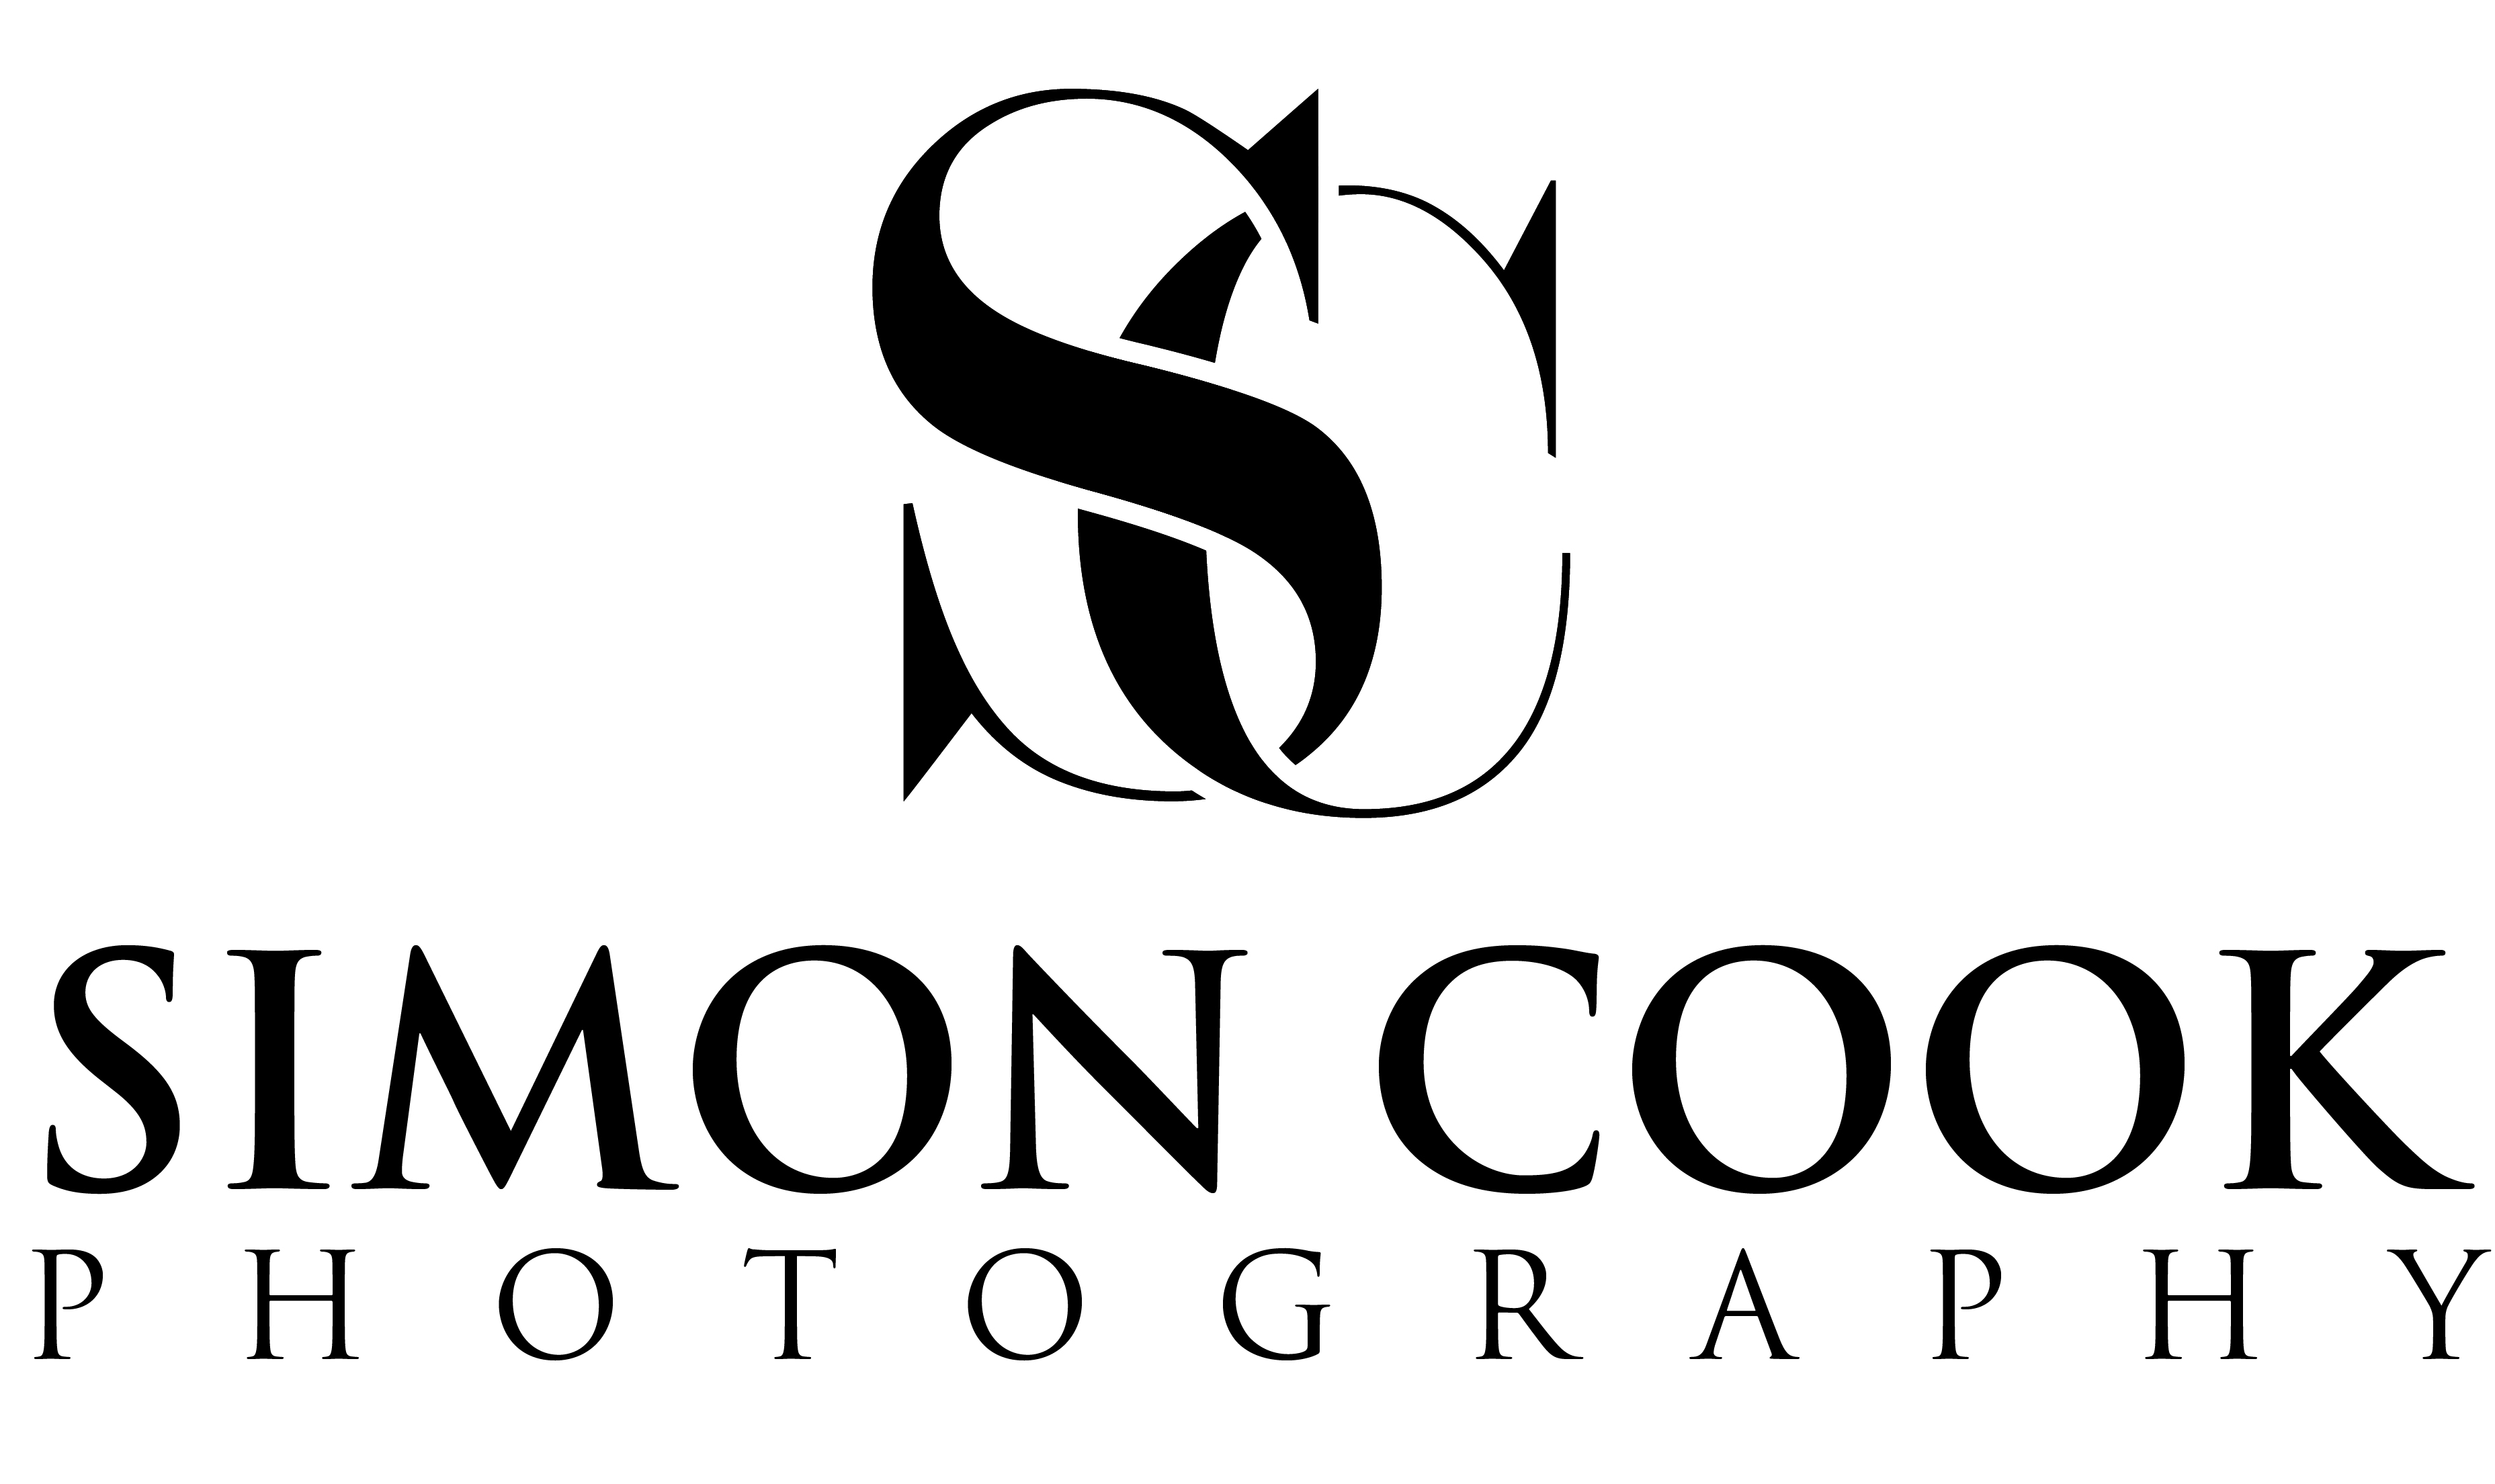 Simon Cook Photography